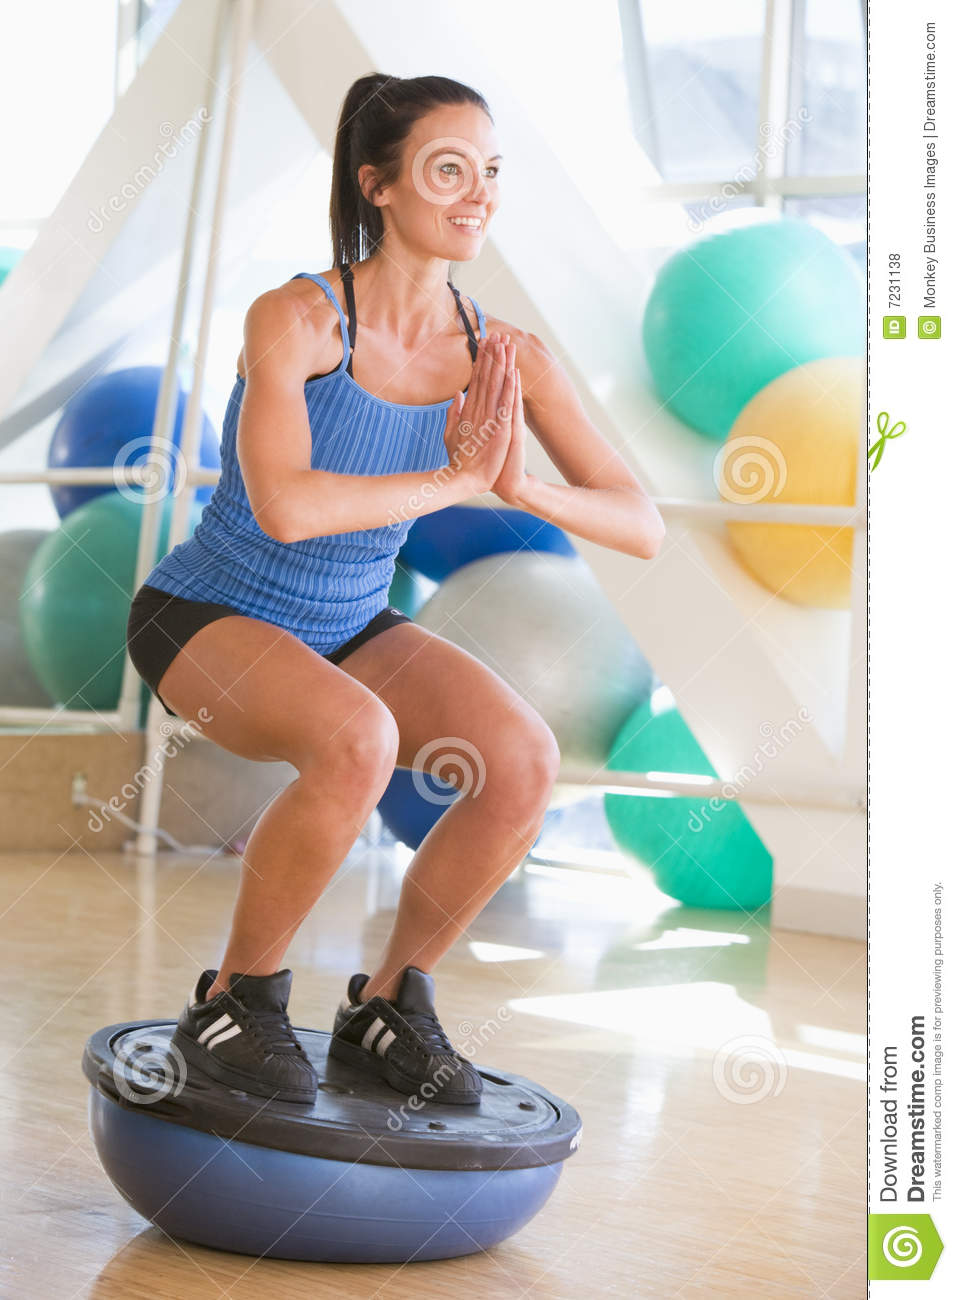 Balance gym trainer using woman